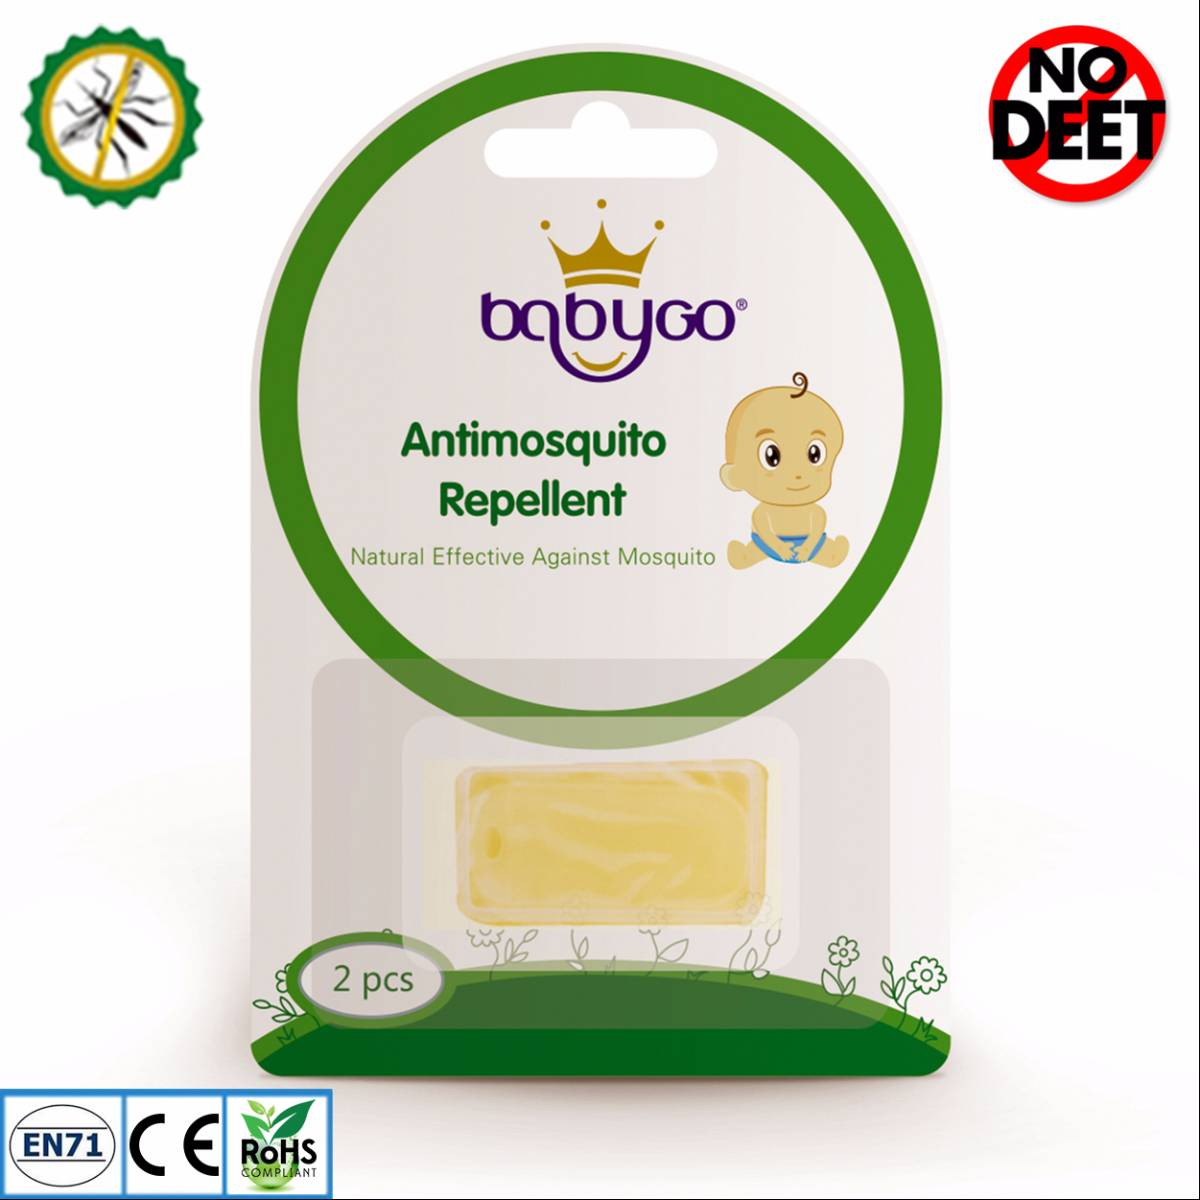 Babygo Refill Pellet Mosquito Repellent (isi Ulang Anti Nyamuk)